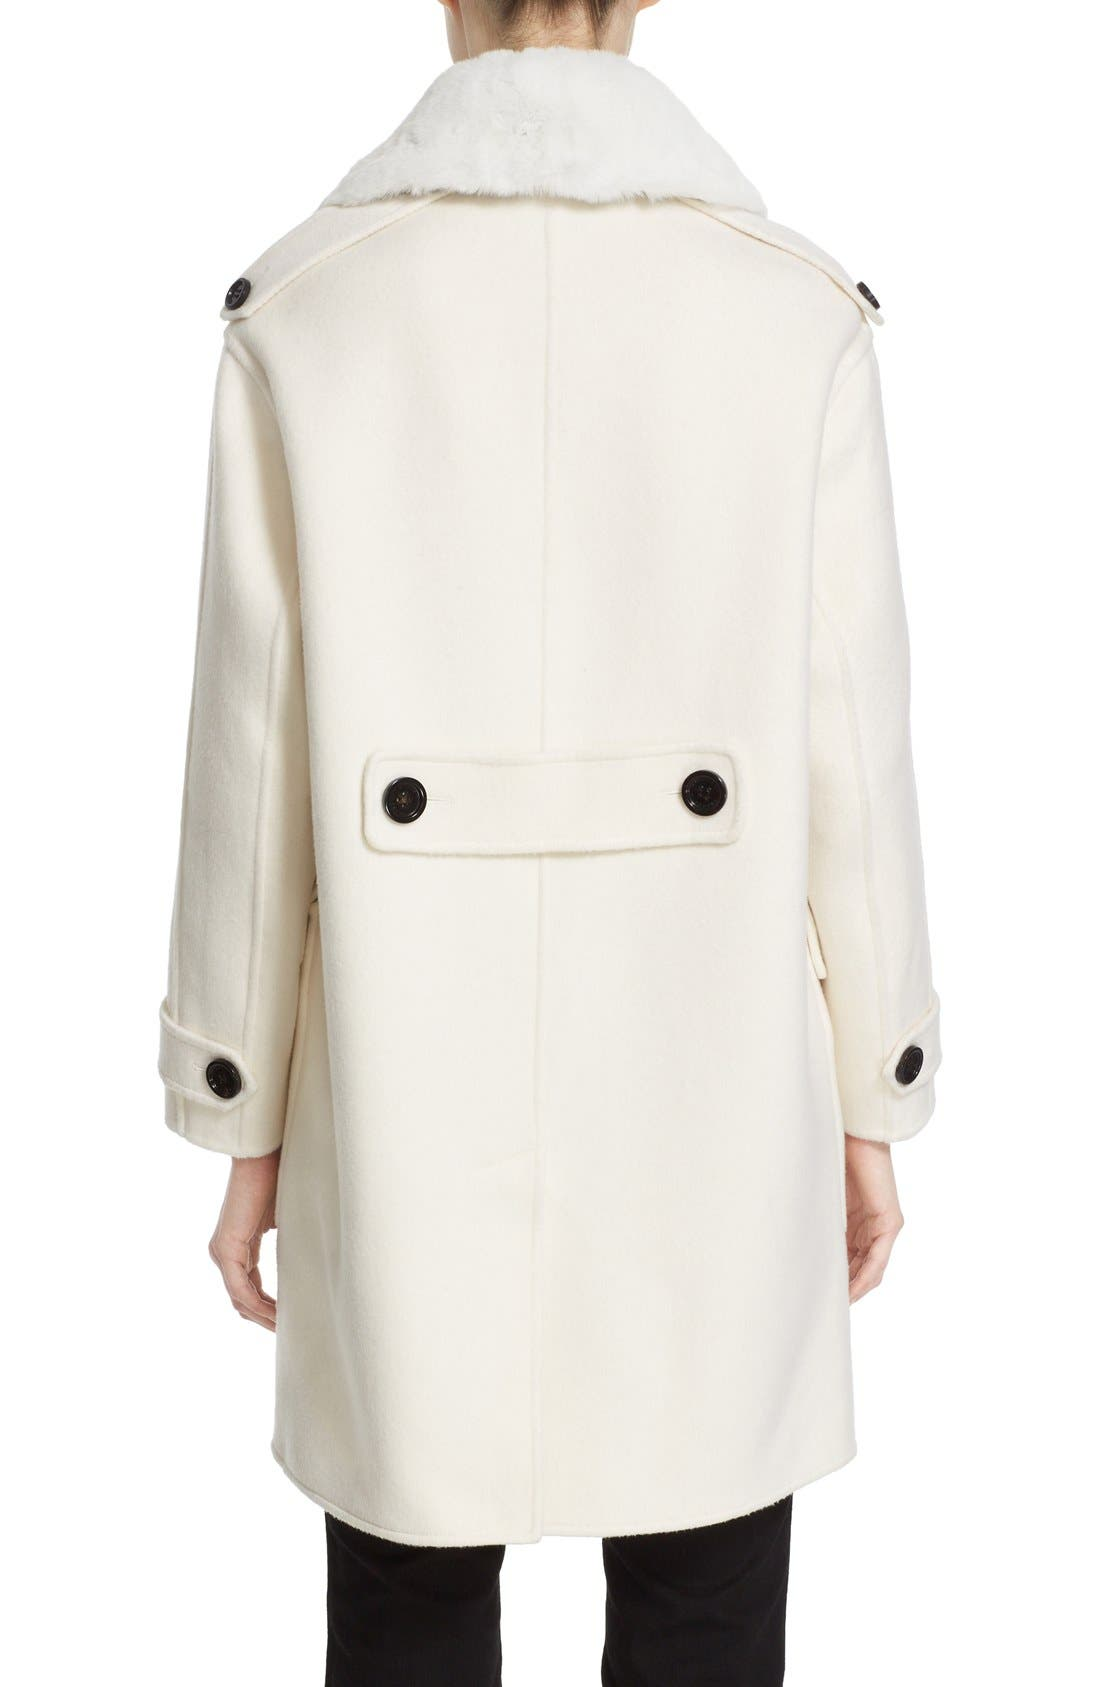 BURBERRY,                             'Highgate' Cashmere Duffle Coat with Removable Genuine Rabbit Fur Collar,                             Alternate thumbnail 5, color,                             900